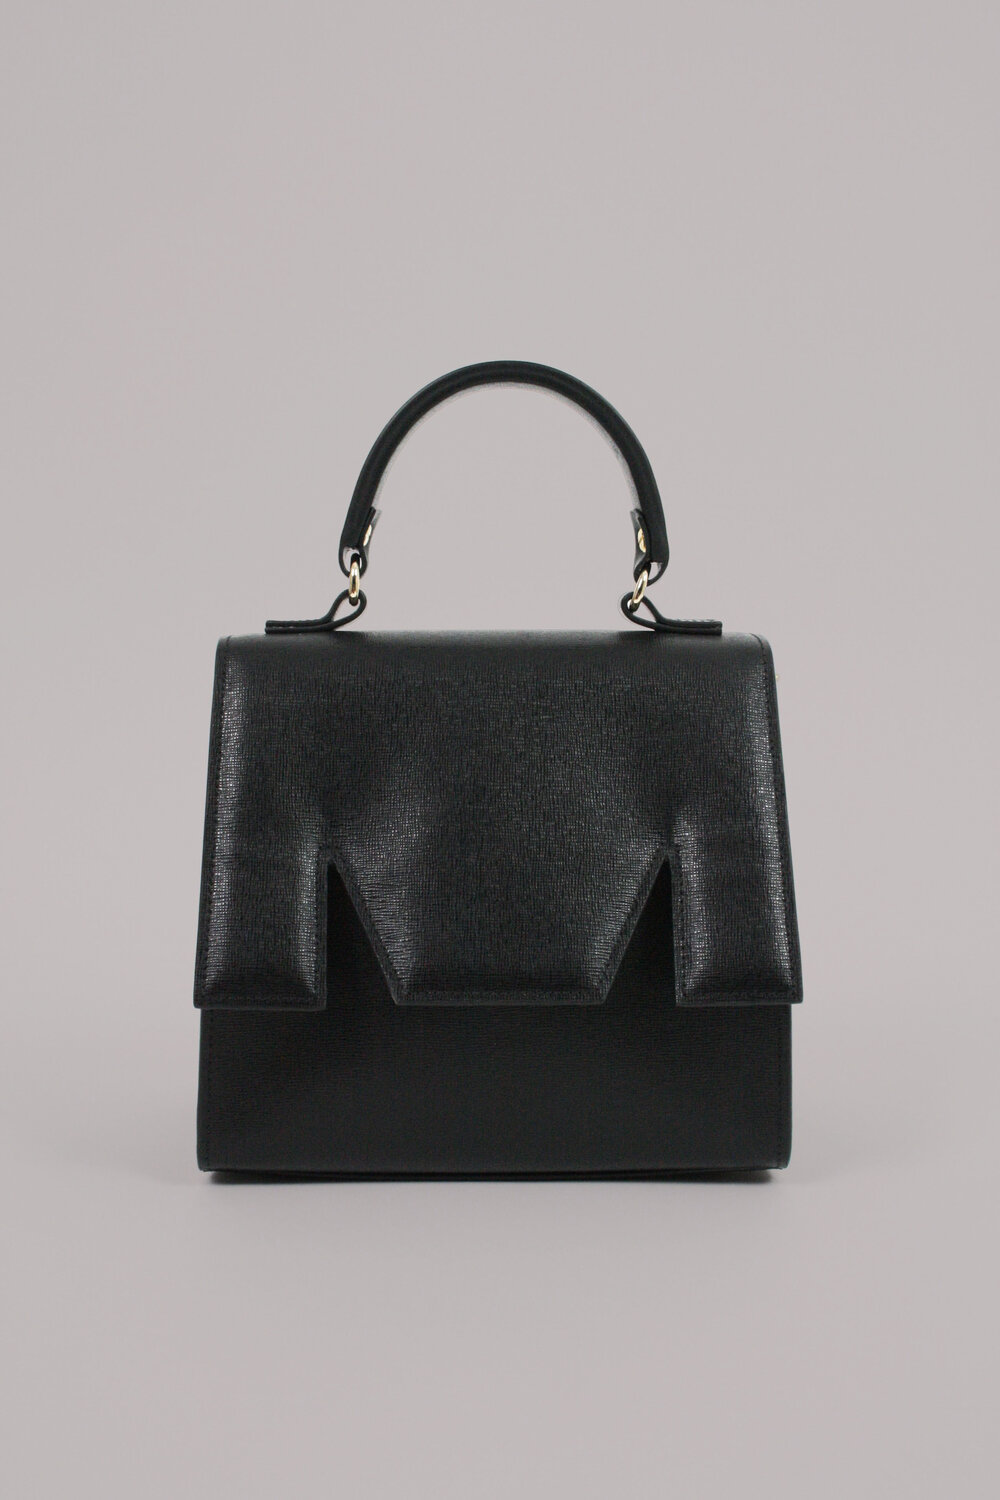 Msgm BLACK BUM BAG